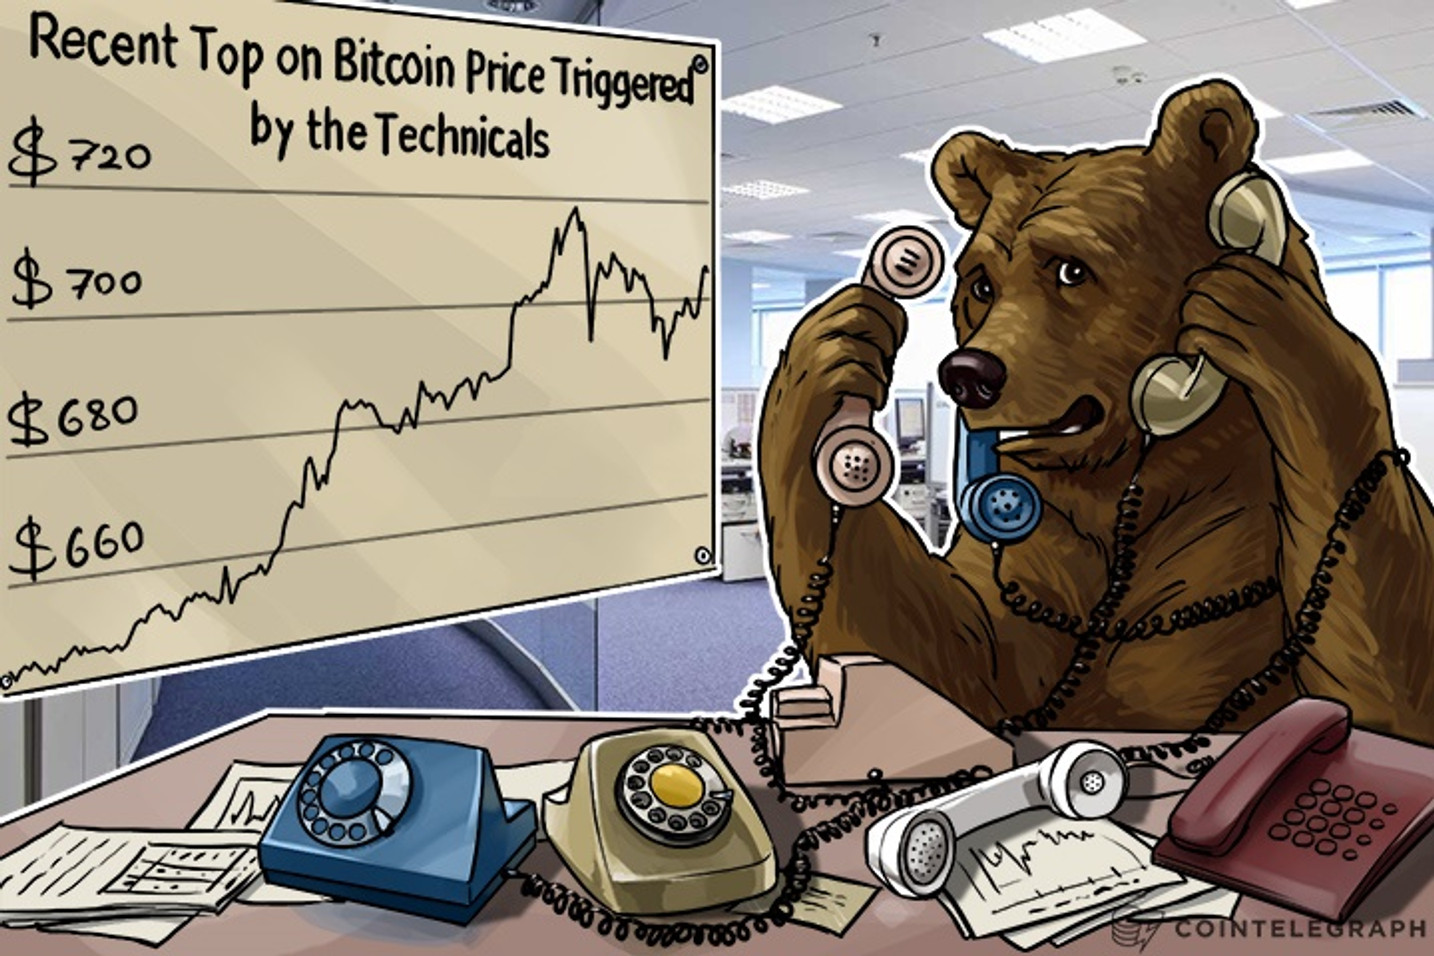 Recent Top on Bitcoin Price Triggered by the Technicals